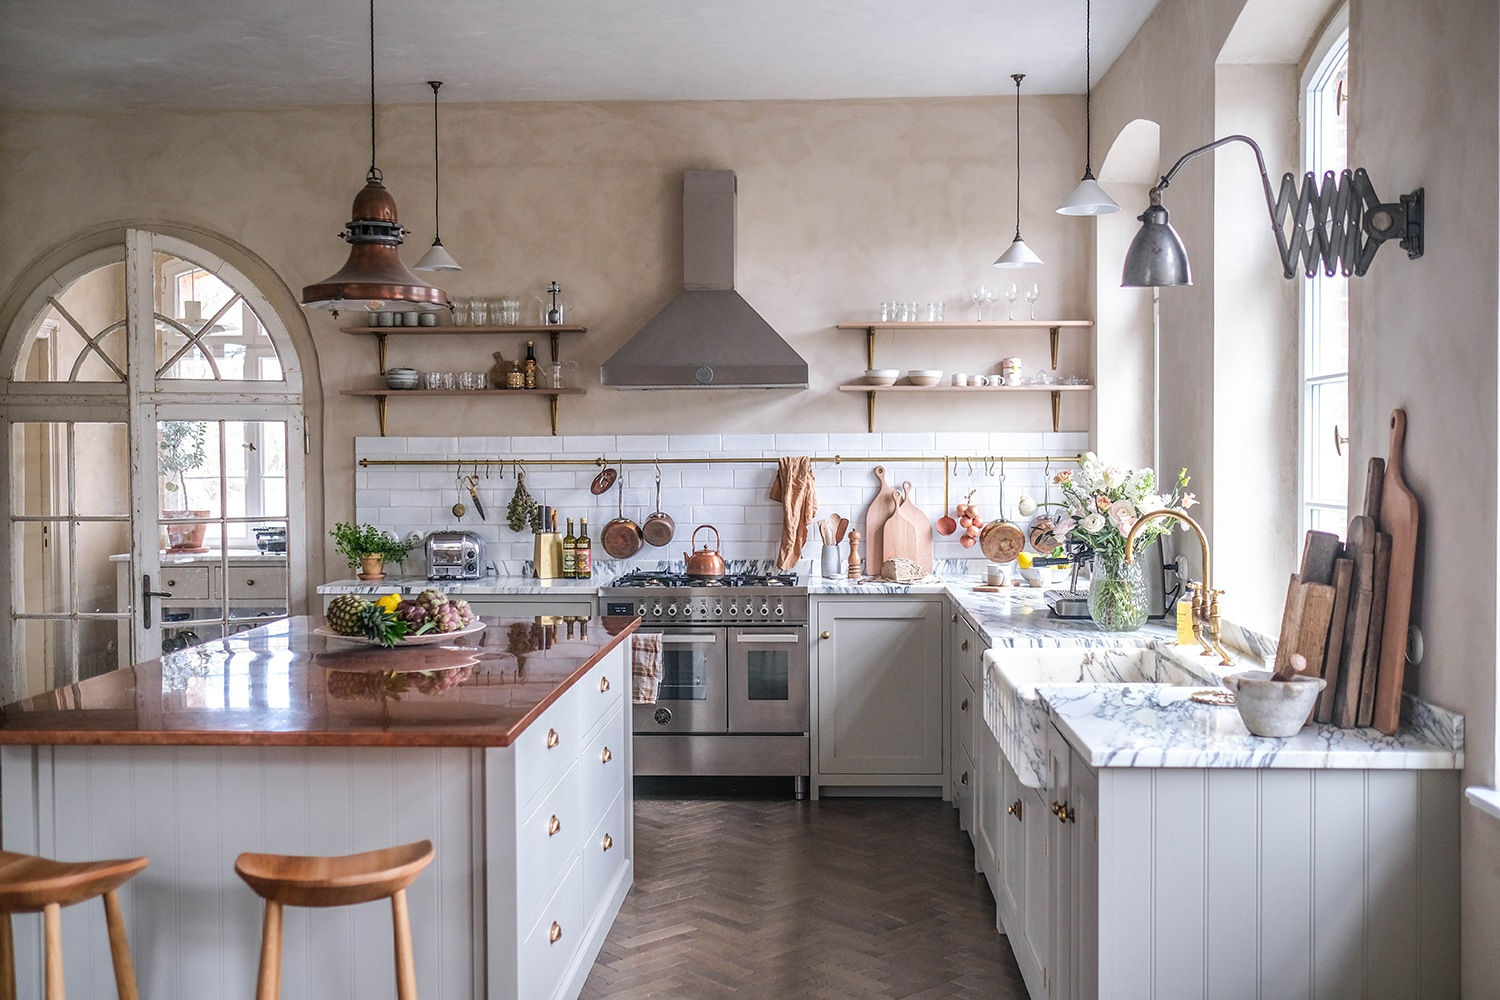 Our Kitchen Renovation   Before and After   Our Food Stories